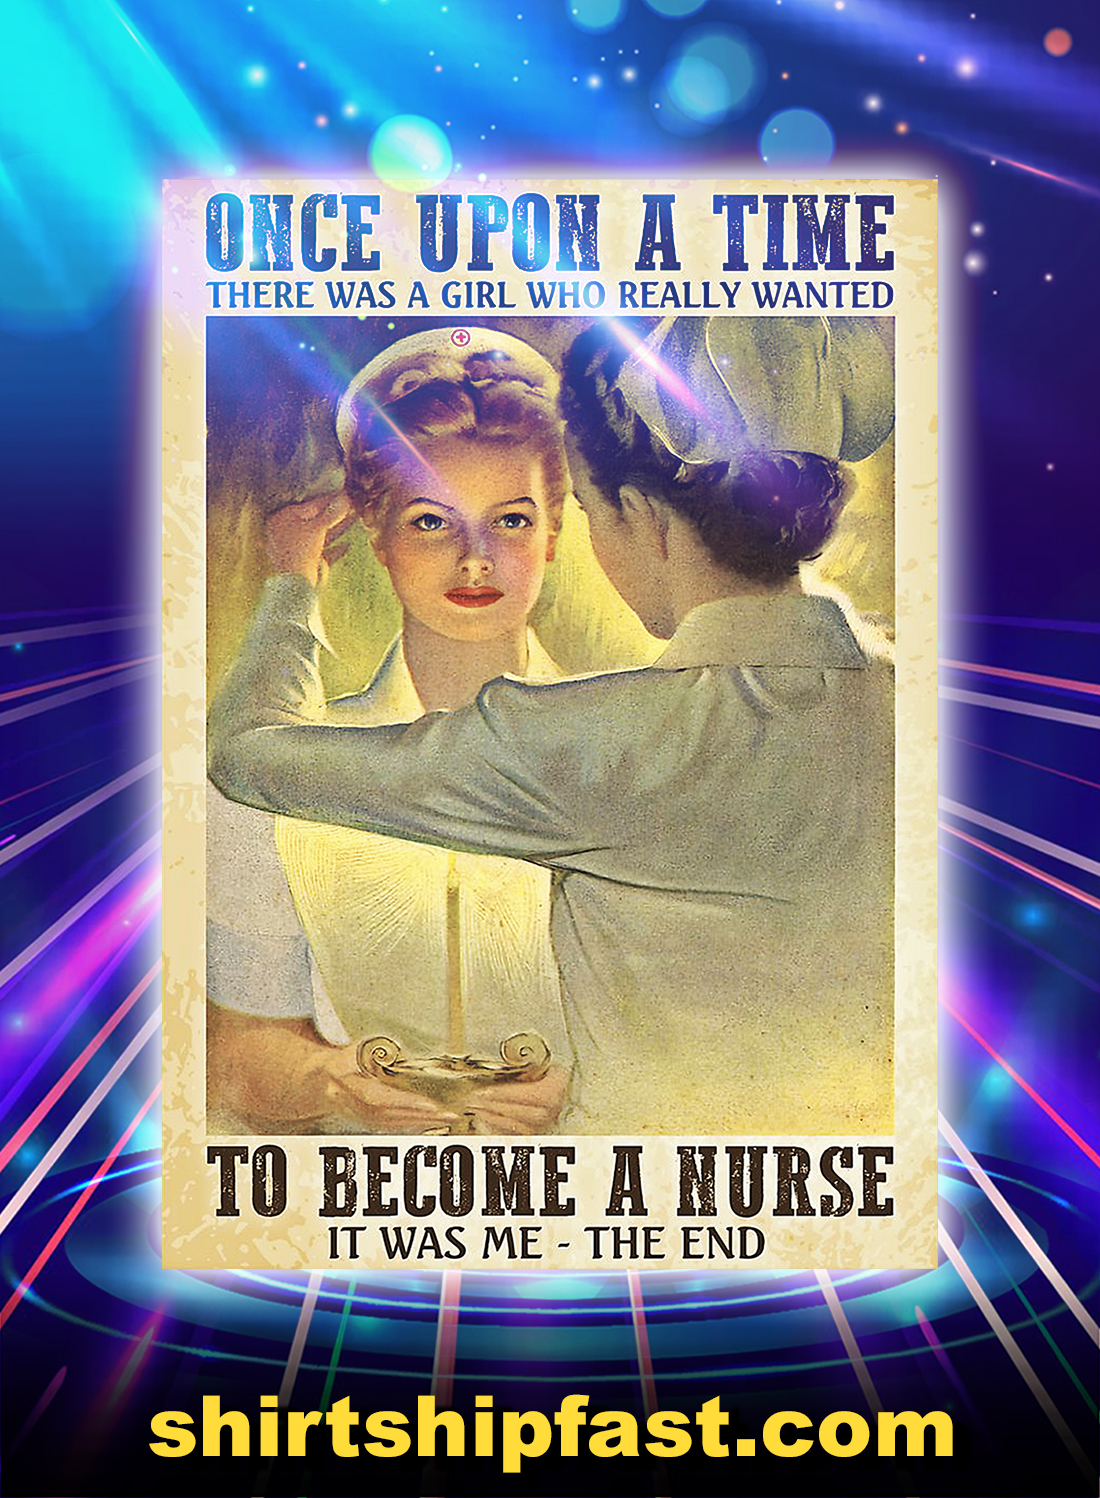 Once upon a time there was a girl who really wanted to become a nurse poster - A4